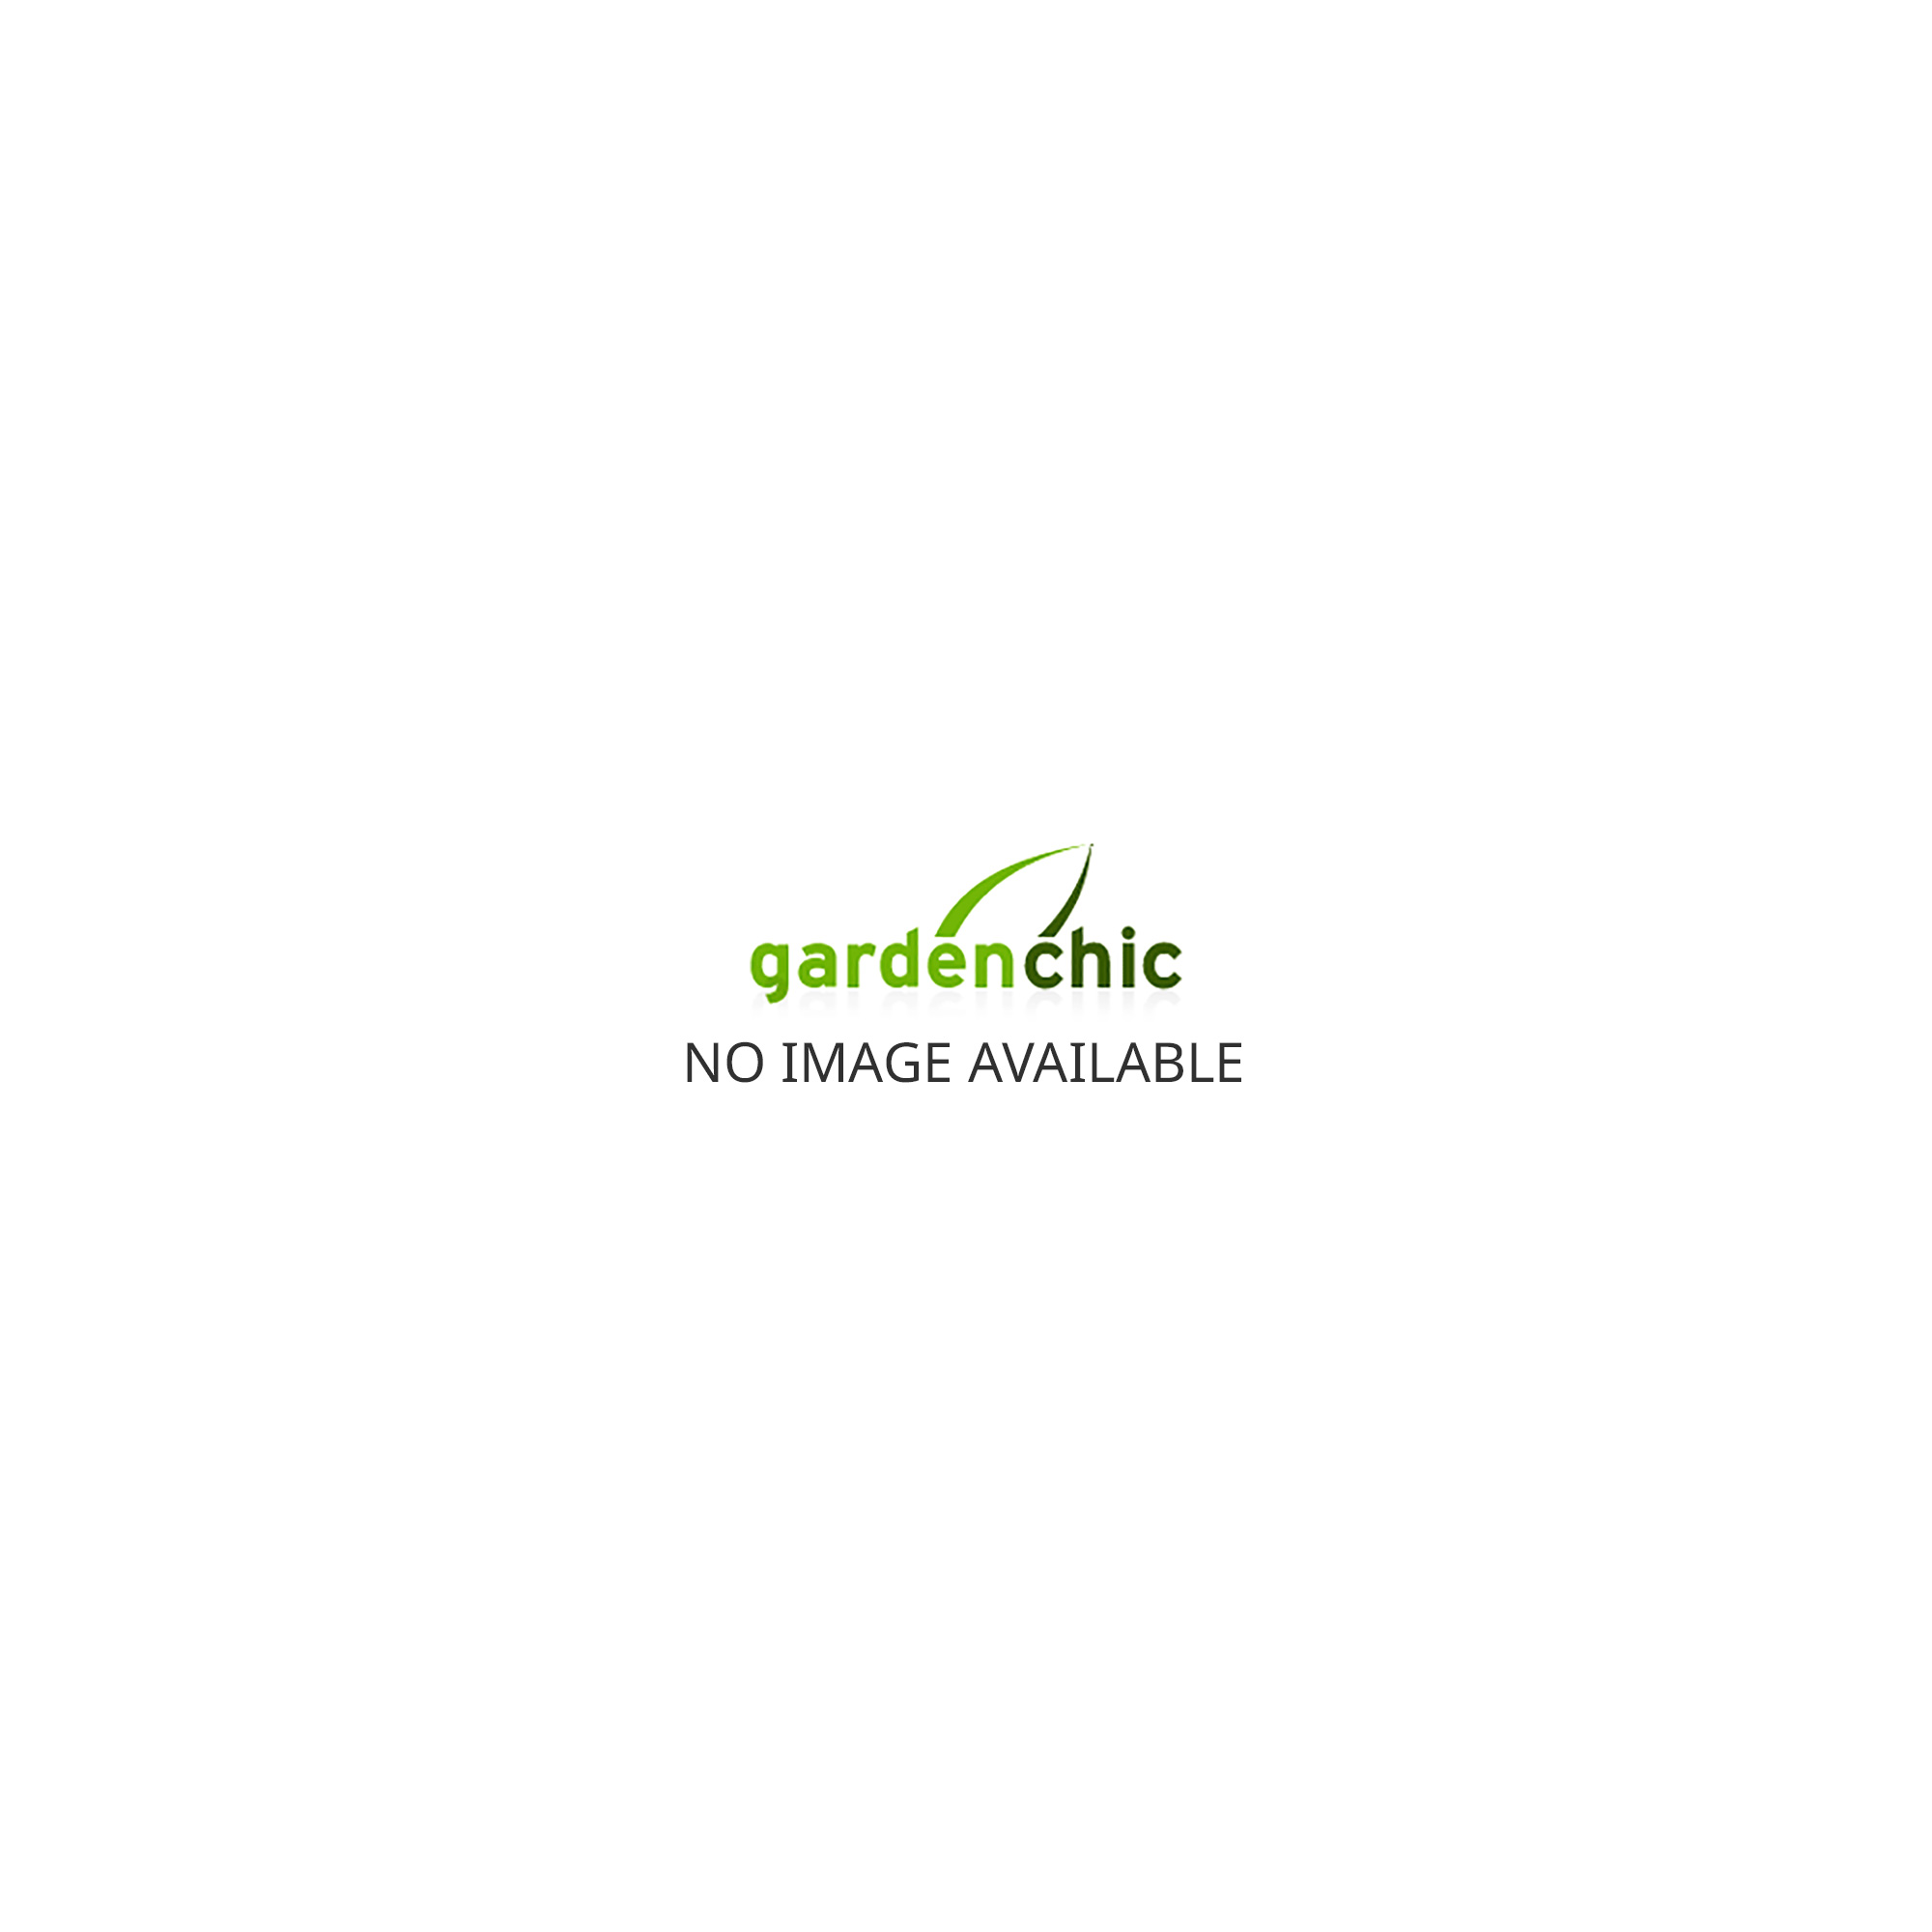 Blockley 8 x 10 Greenhouse (Green) FREE Waterbutt, Connection Kit and Blinds until May 2018